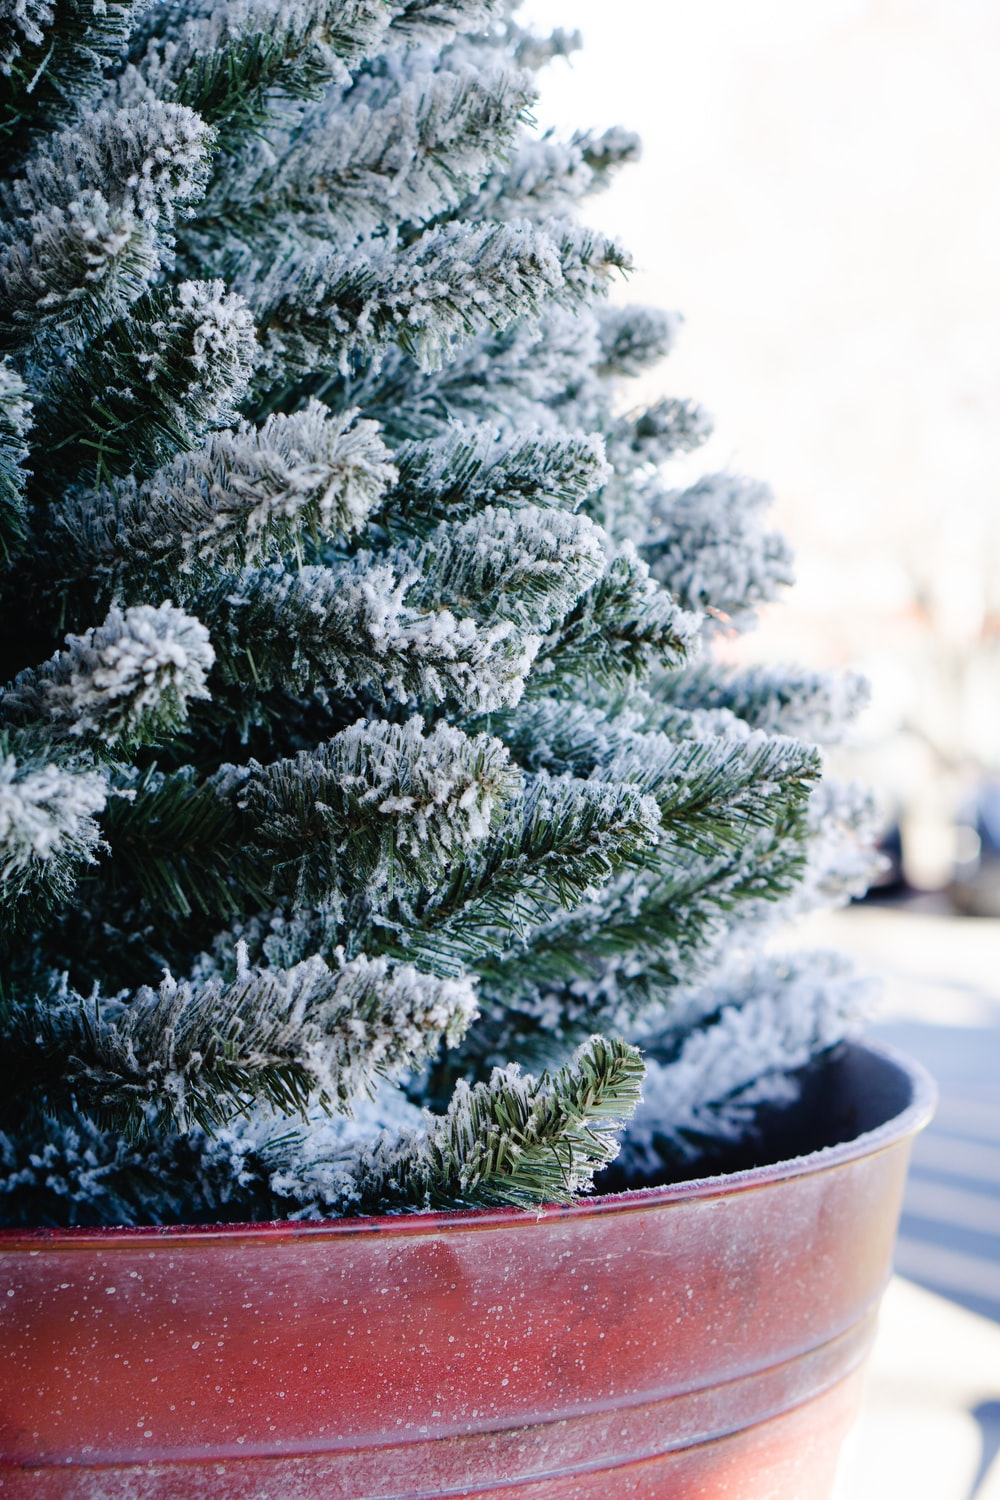 Christmas Tree Snow Pictures Download Free Images On Unsplash